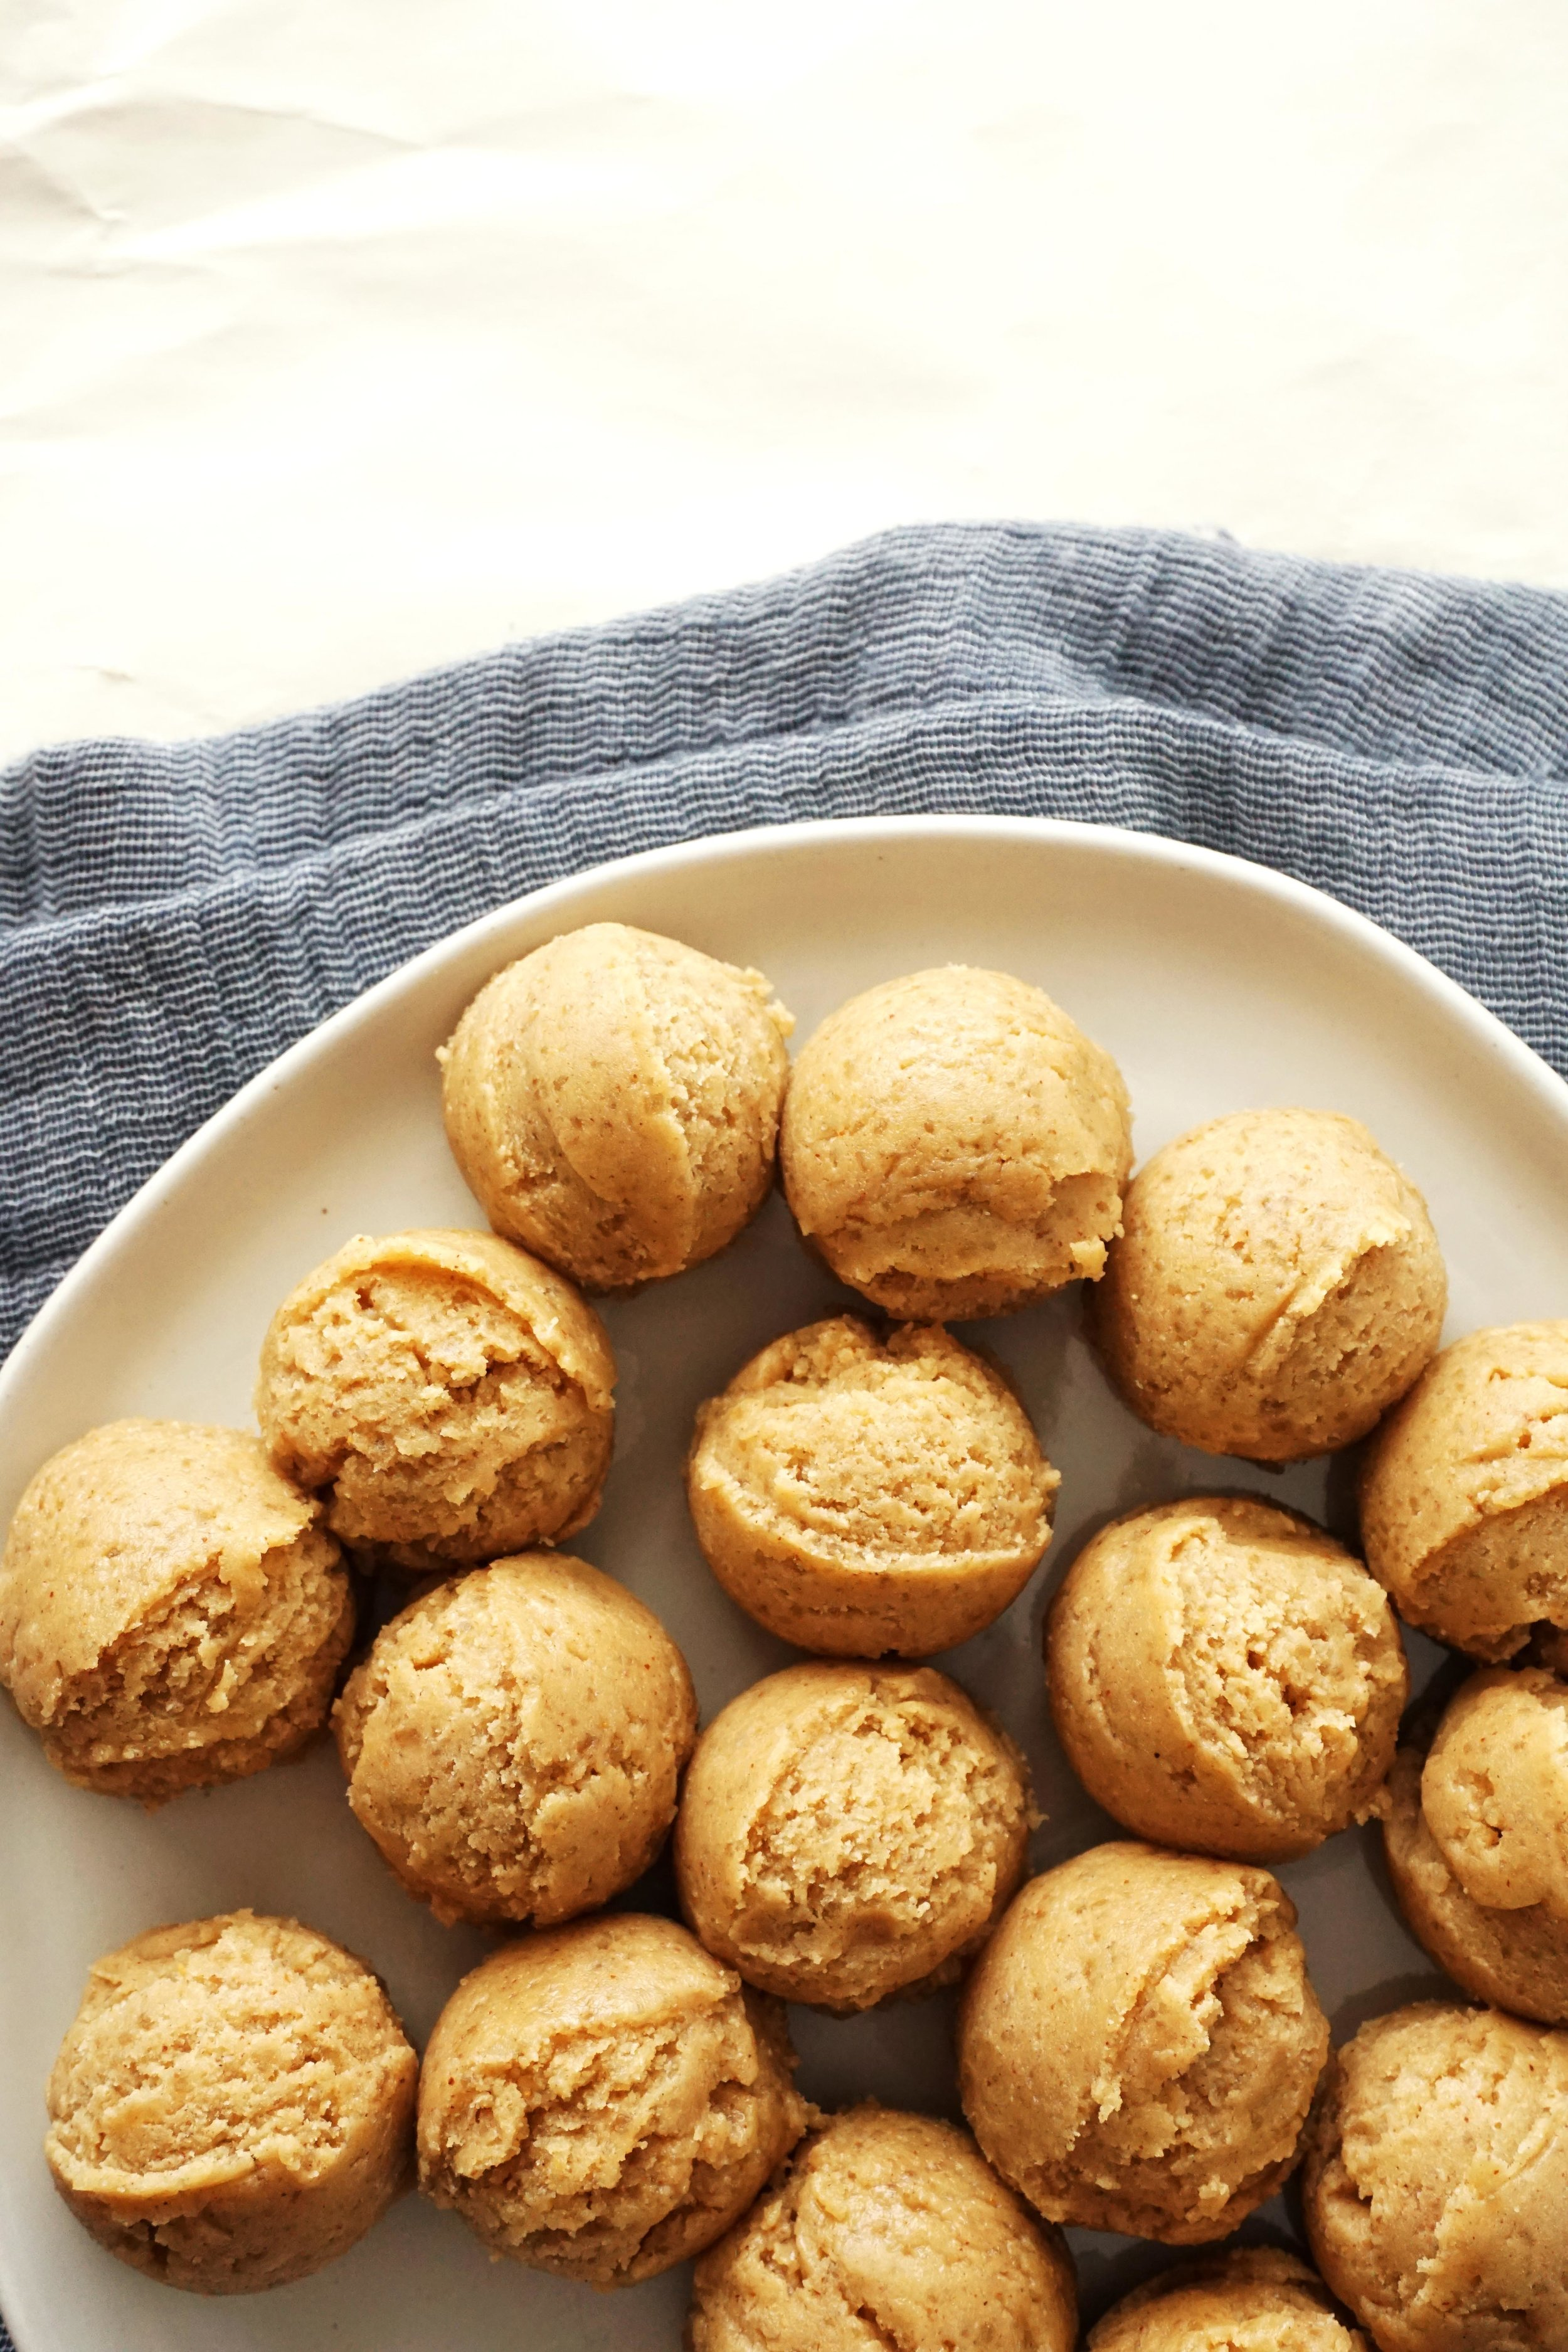 Peanut Butter Blossoms (DF, GF option)